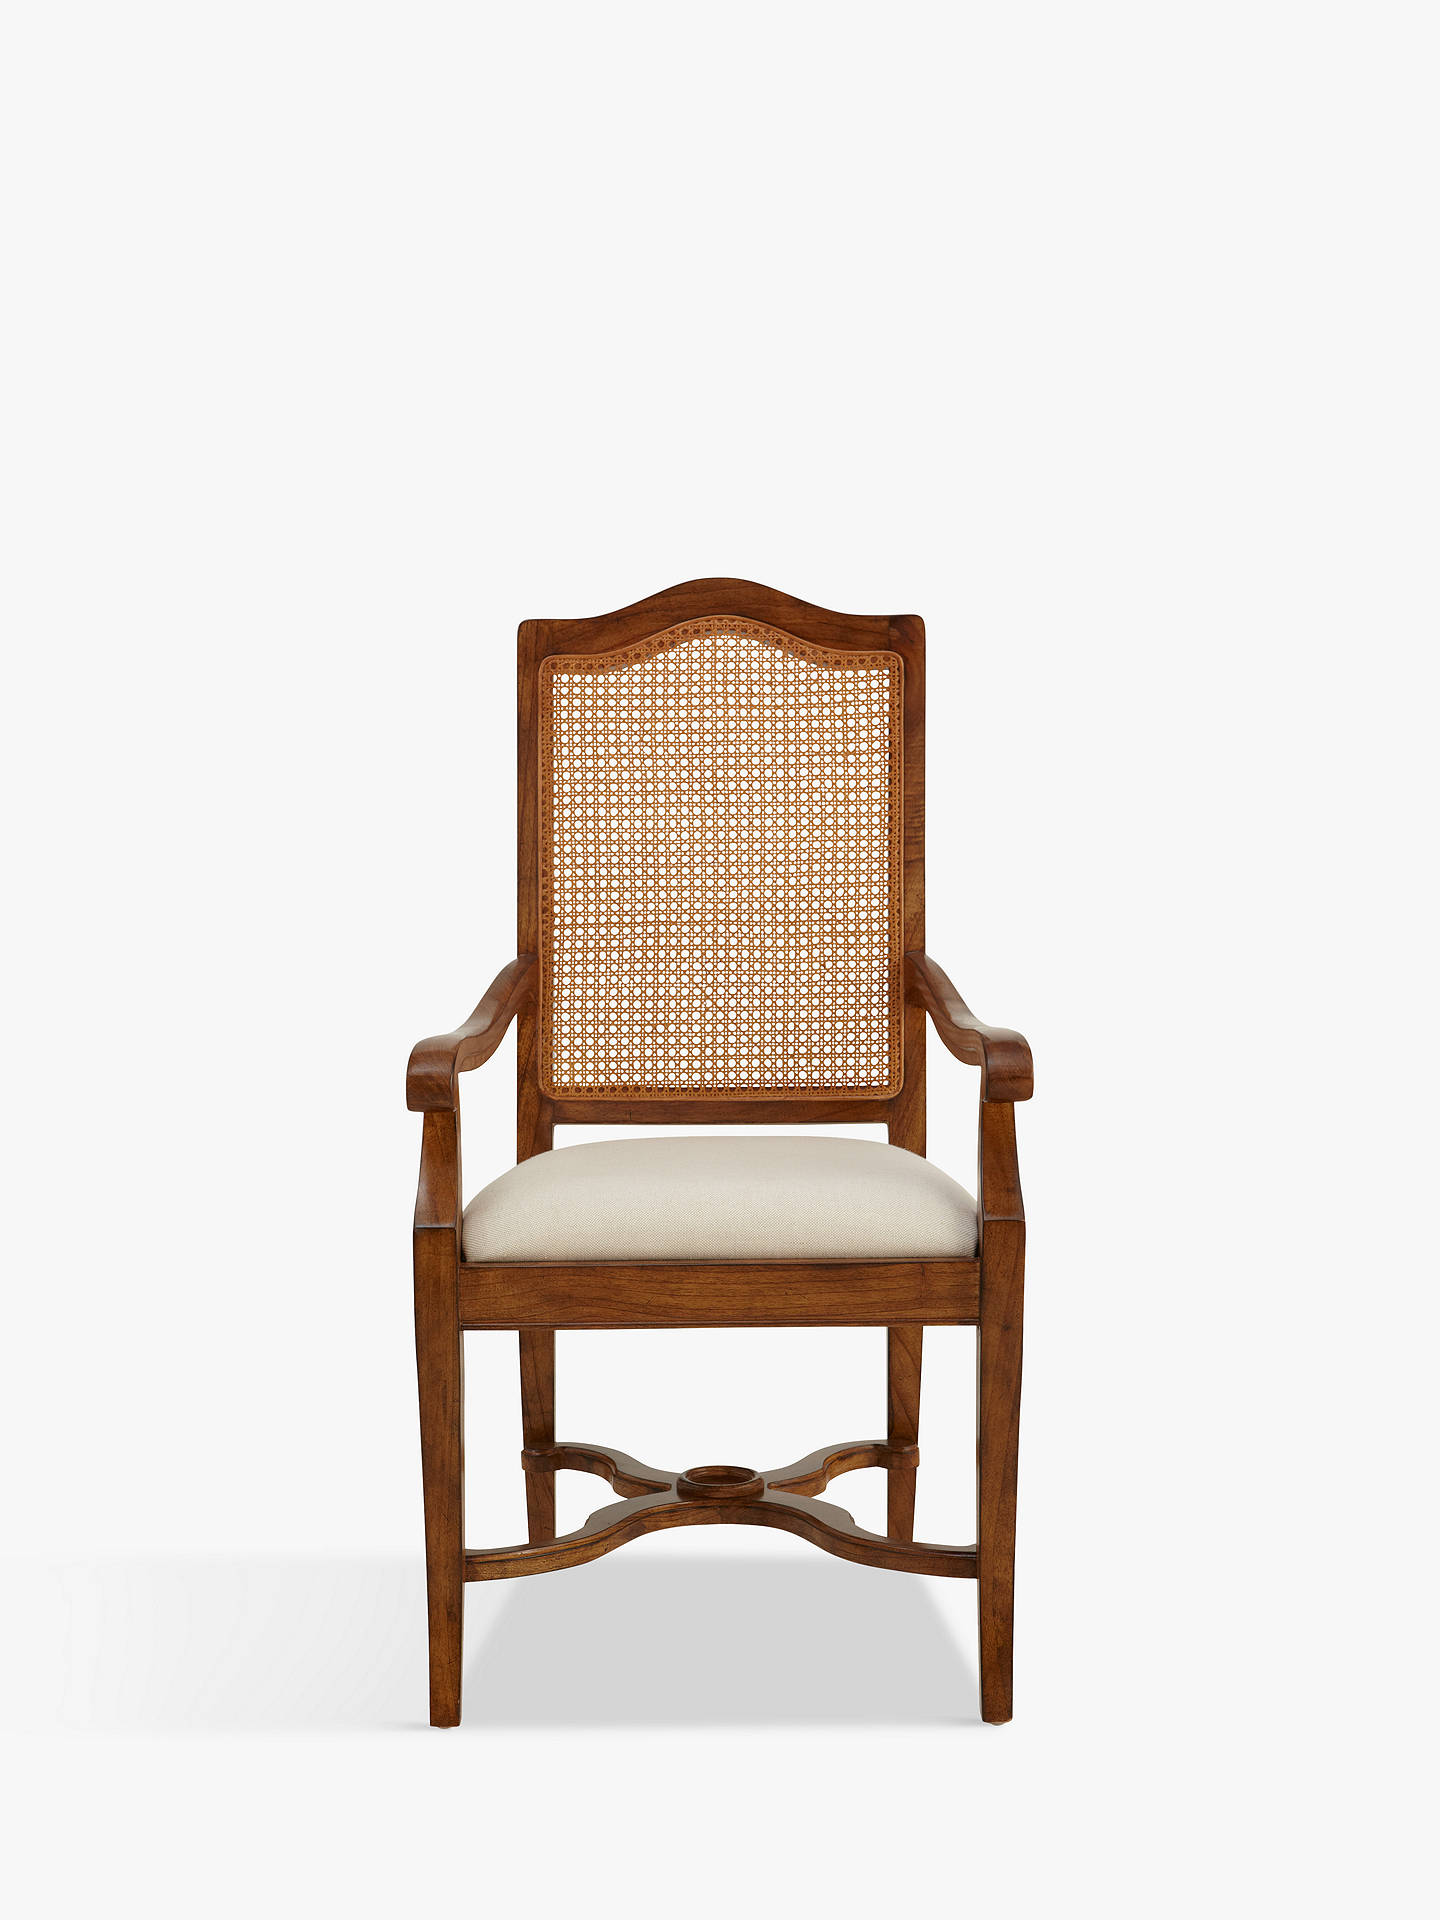 BuyJohn Lewis & Partners Hemingway Cane Carver Chair Online at johnlewis.com